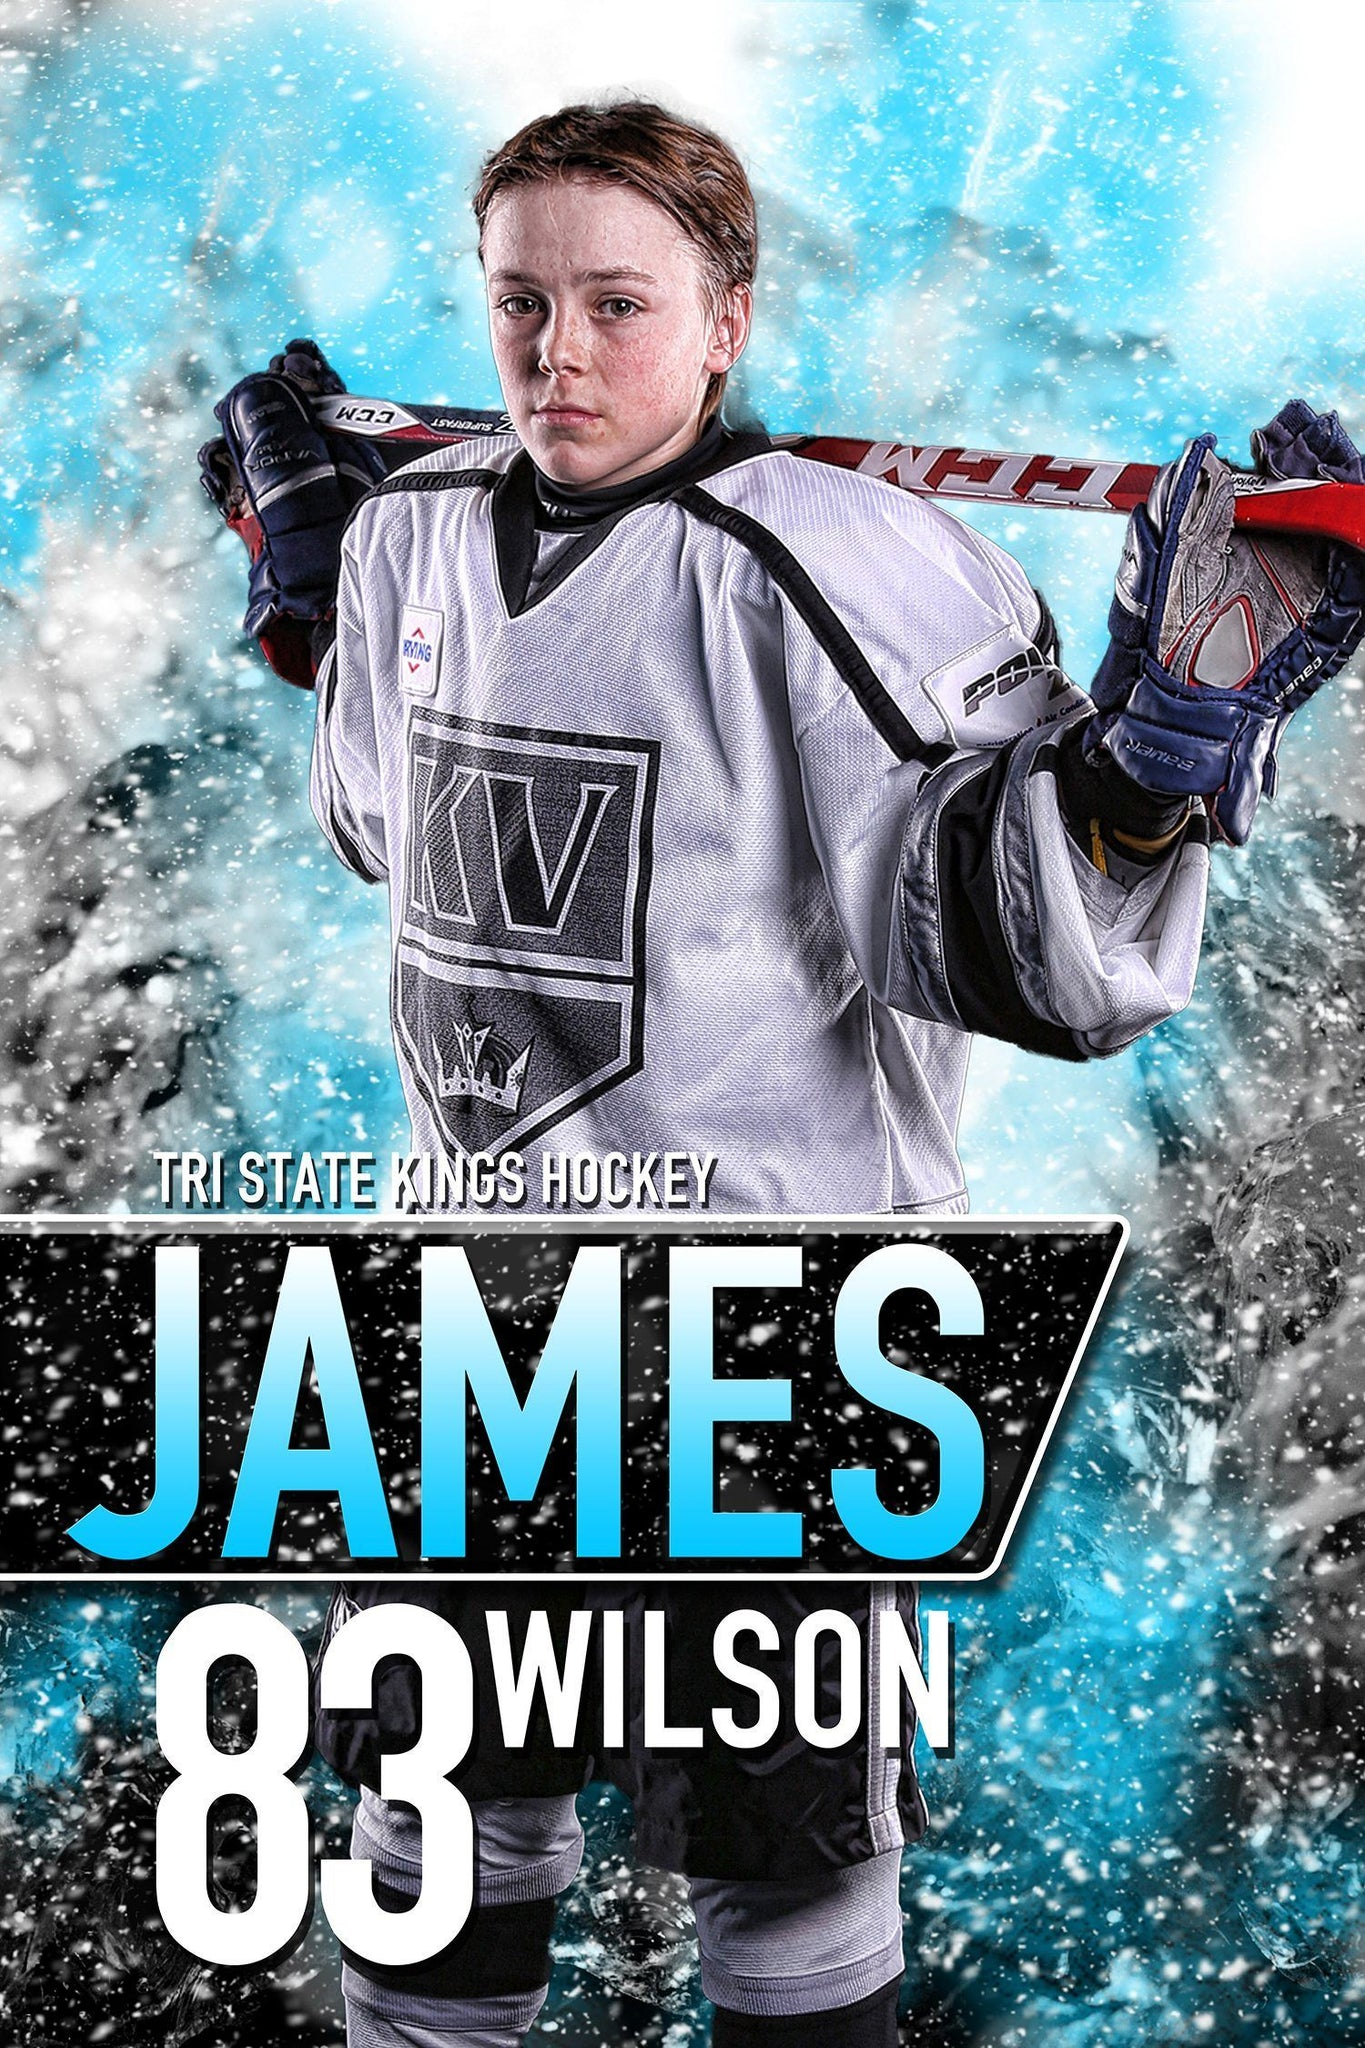 Center Ice - MVP Series - Player Banner & Poster Template V-Photoshop Template - Photo Solutions